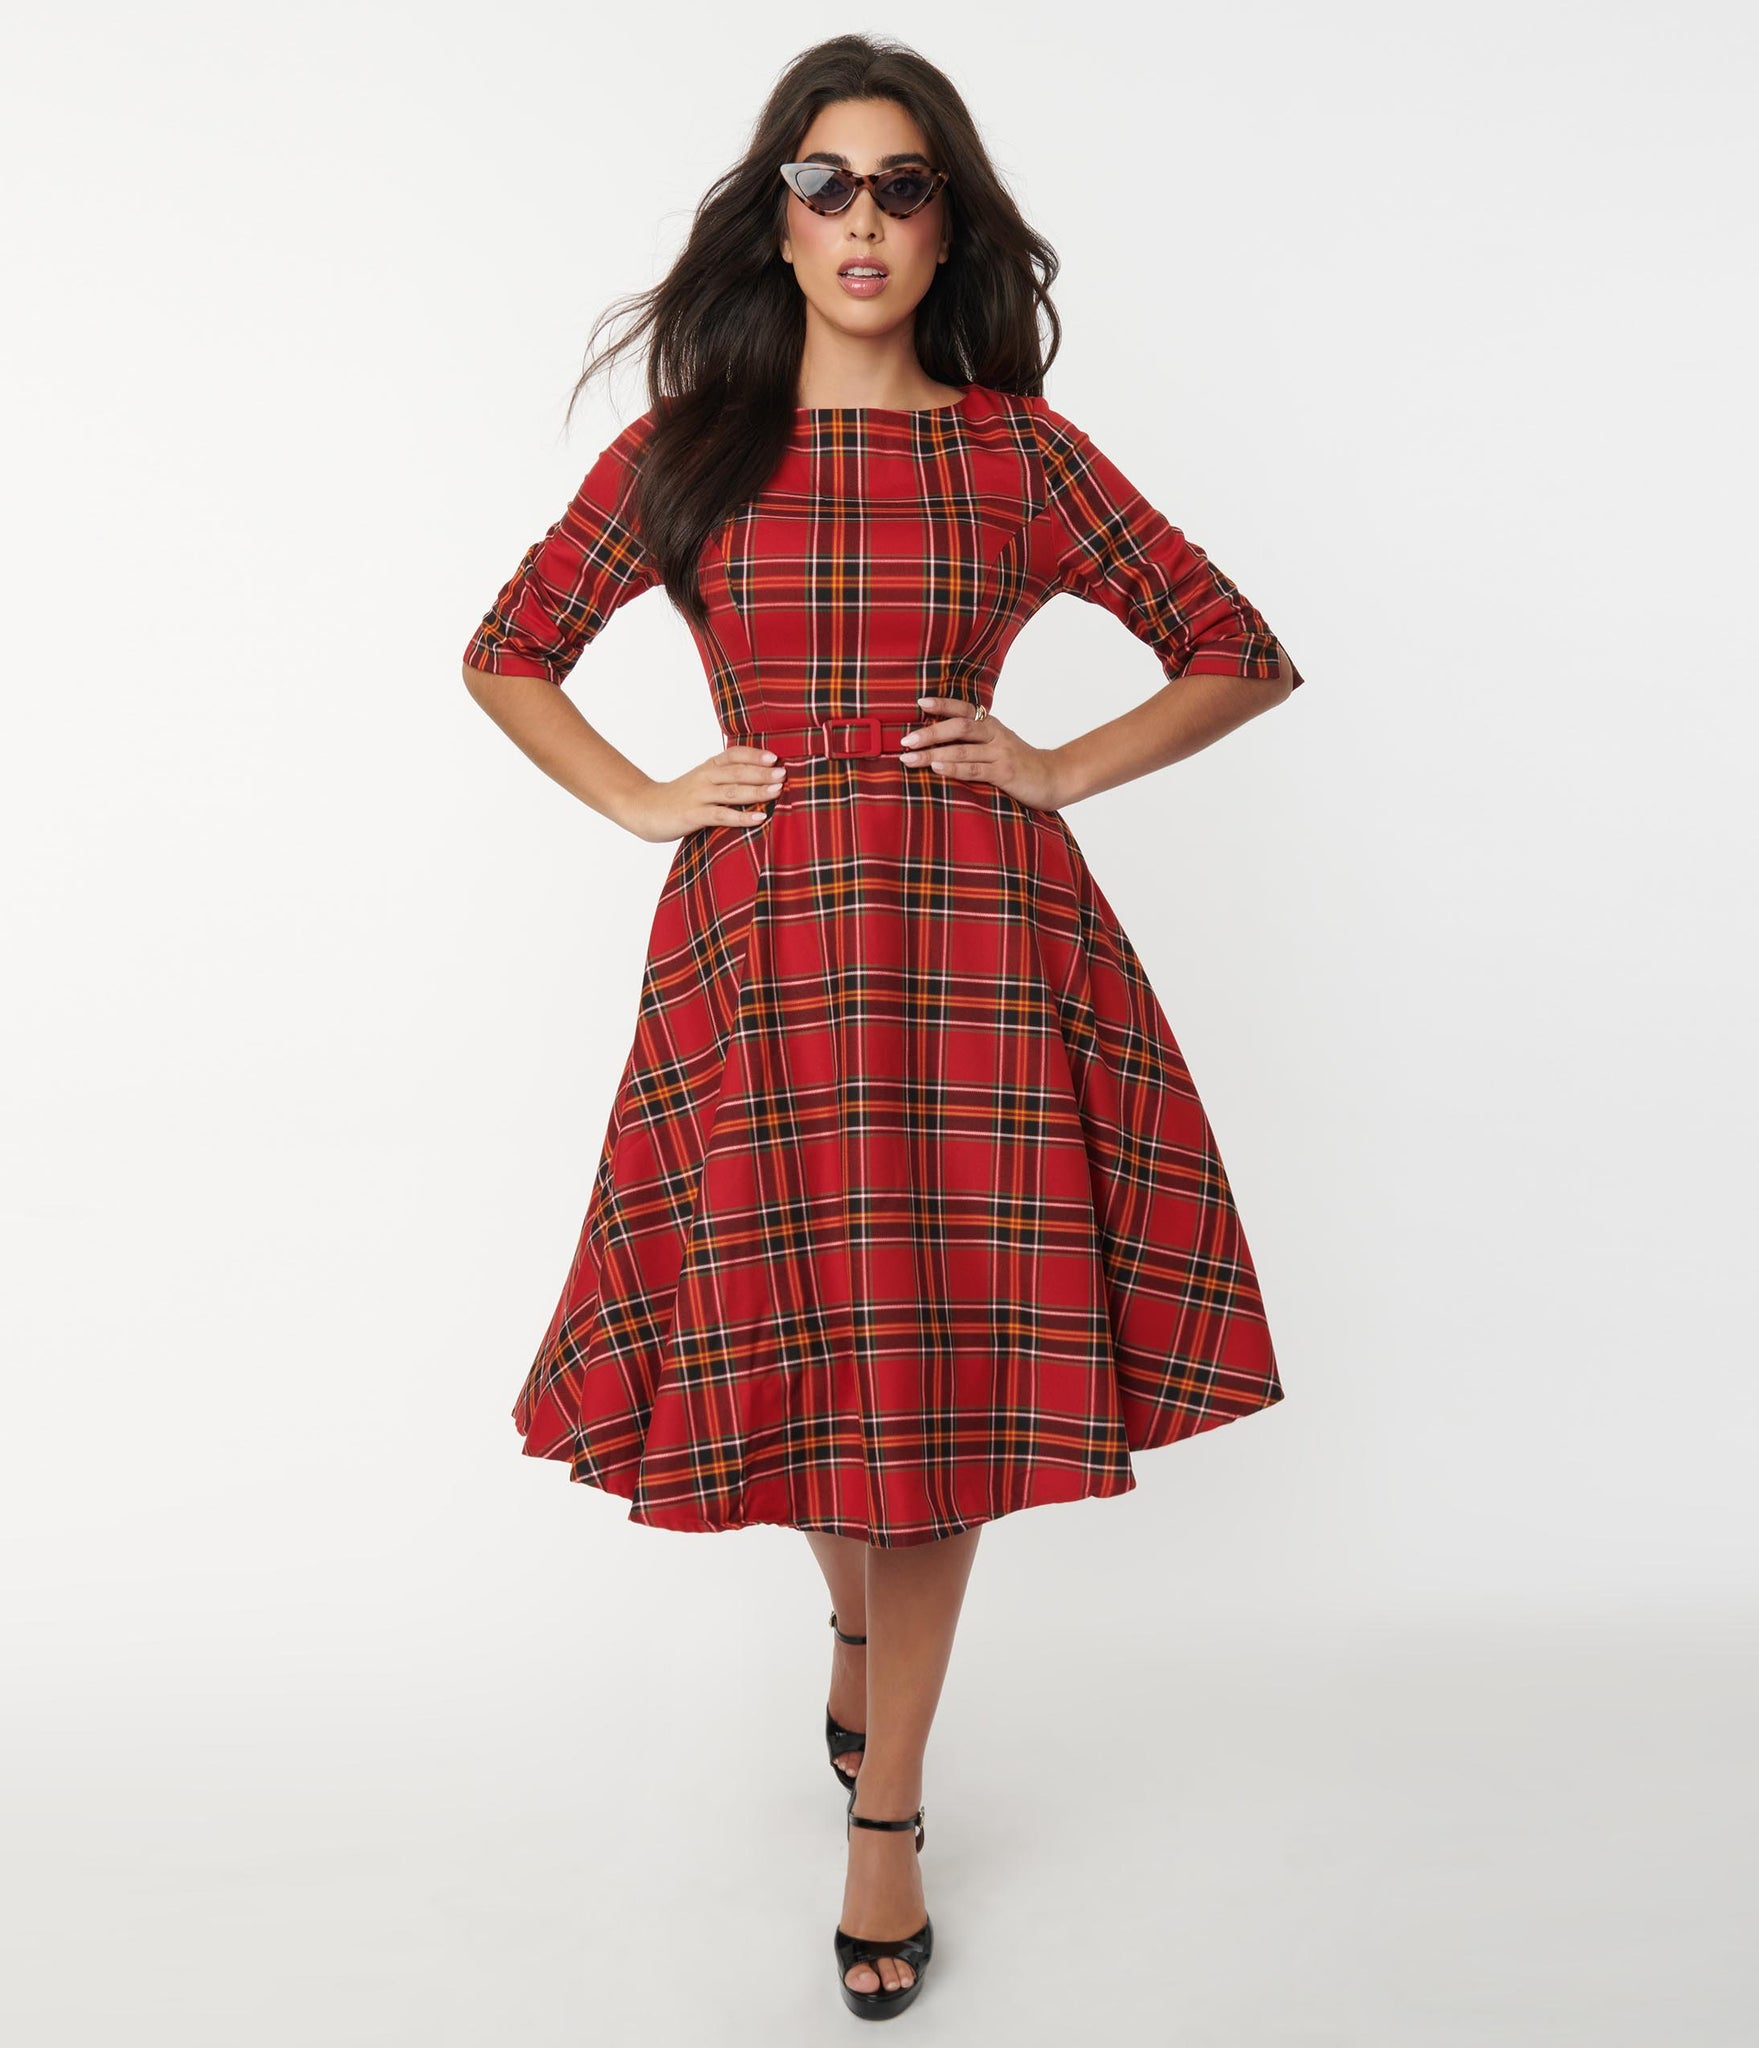 Collectif Red Plaid Suzanne Swing Dress